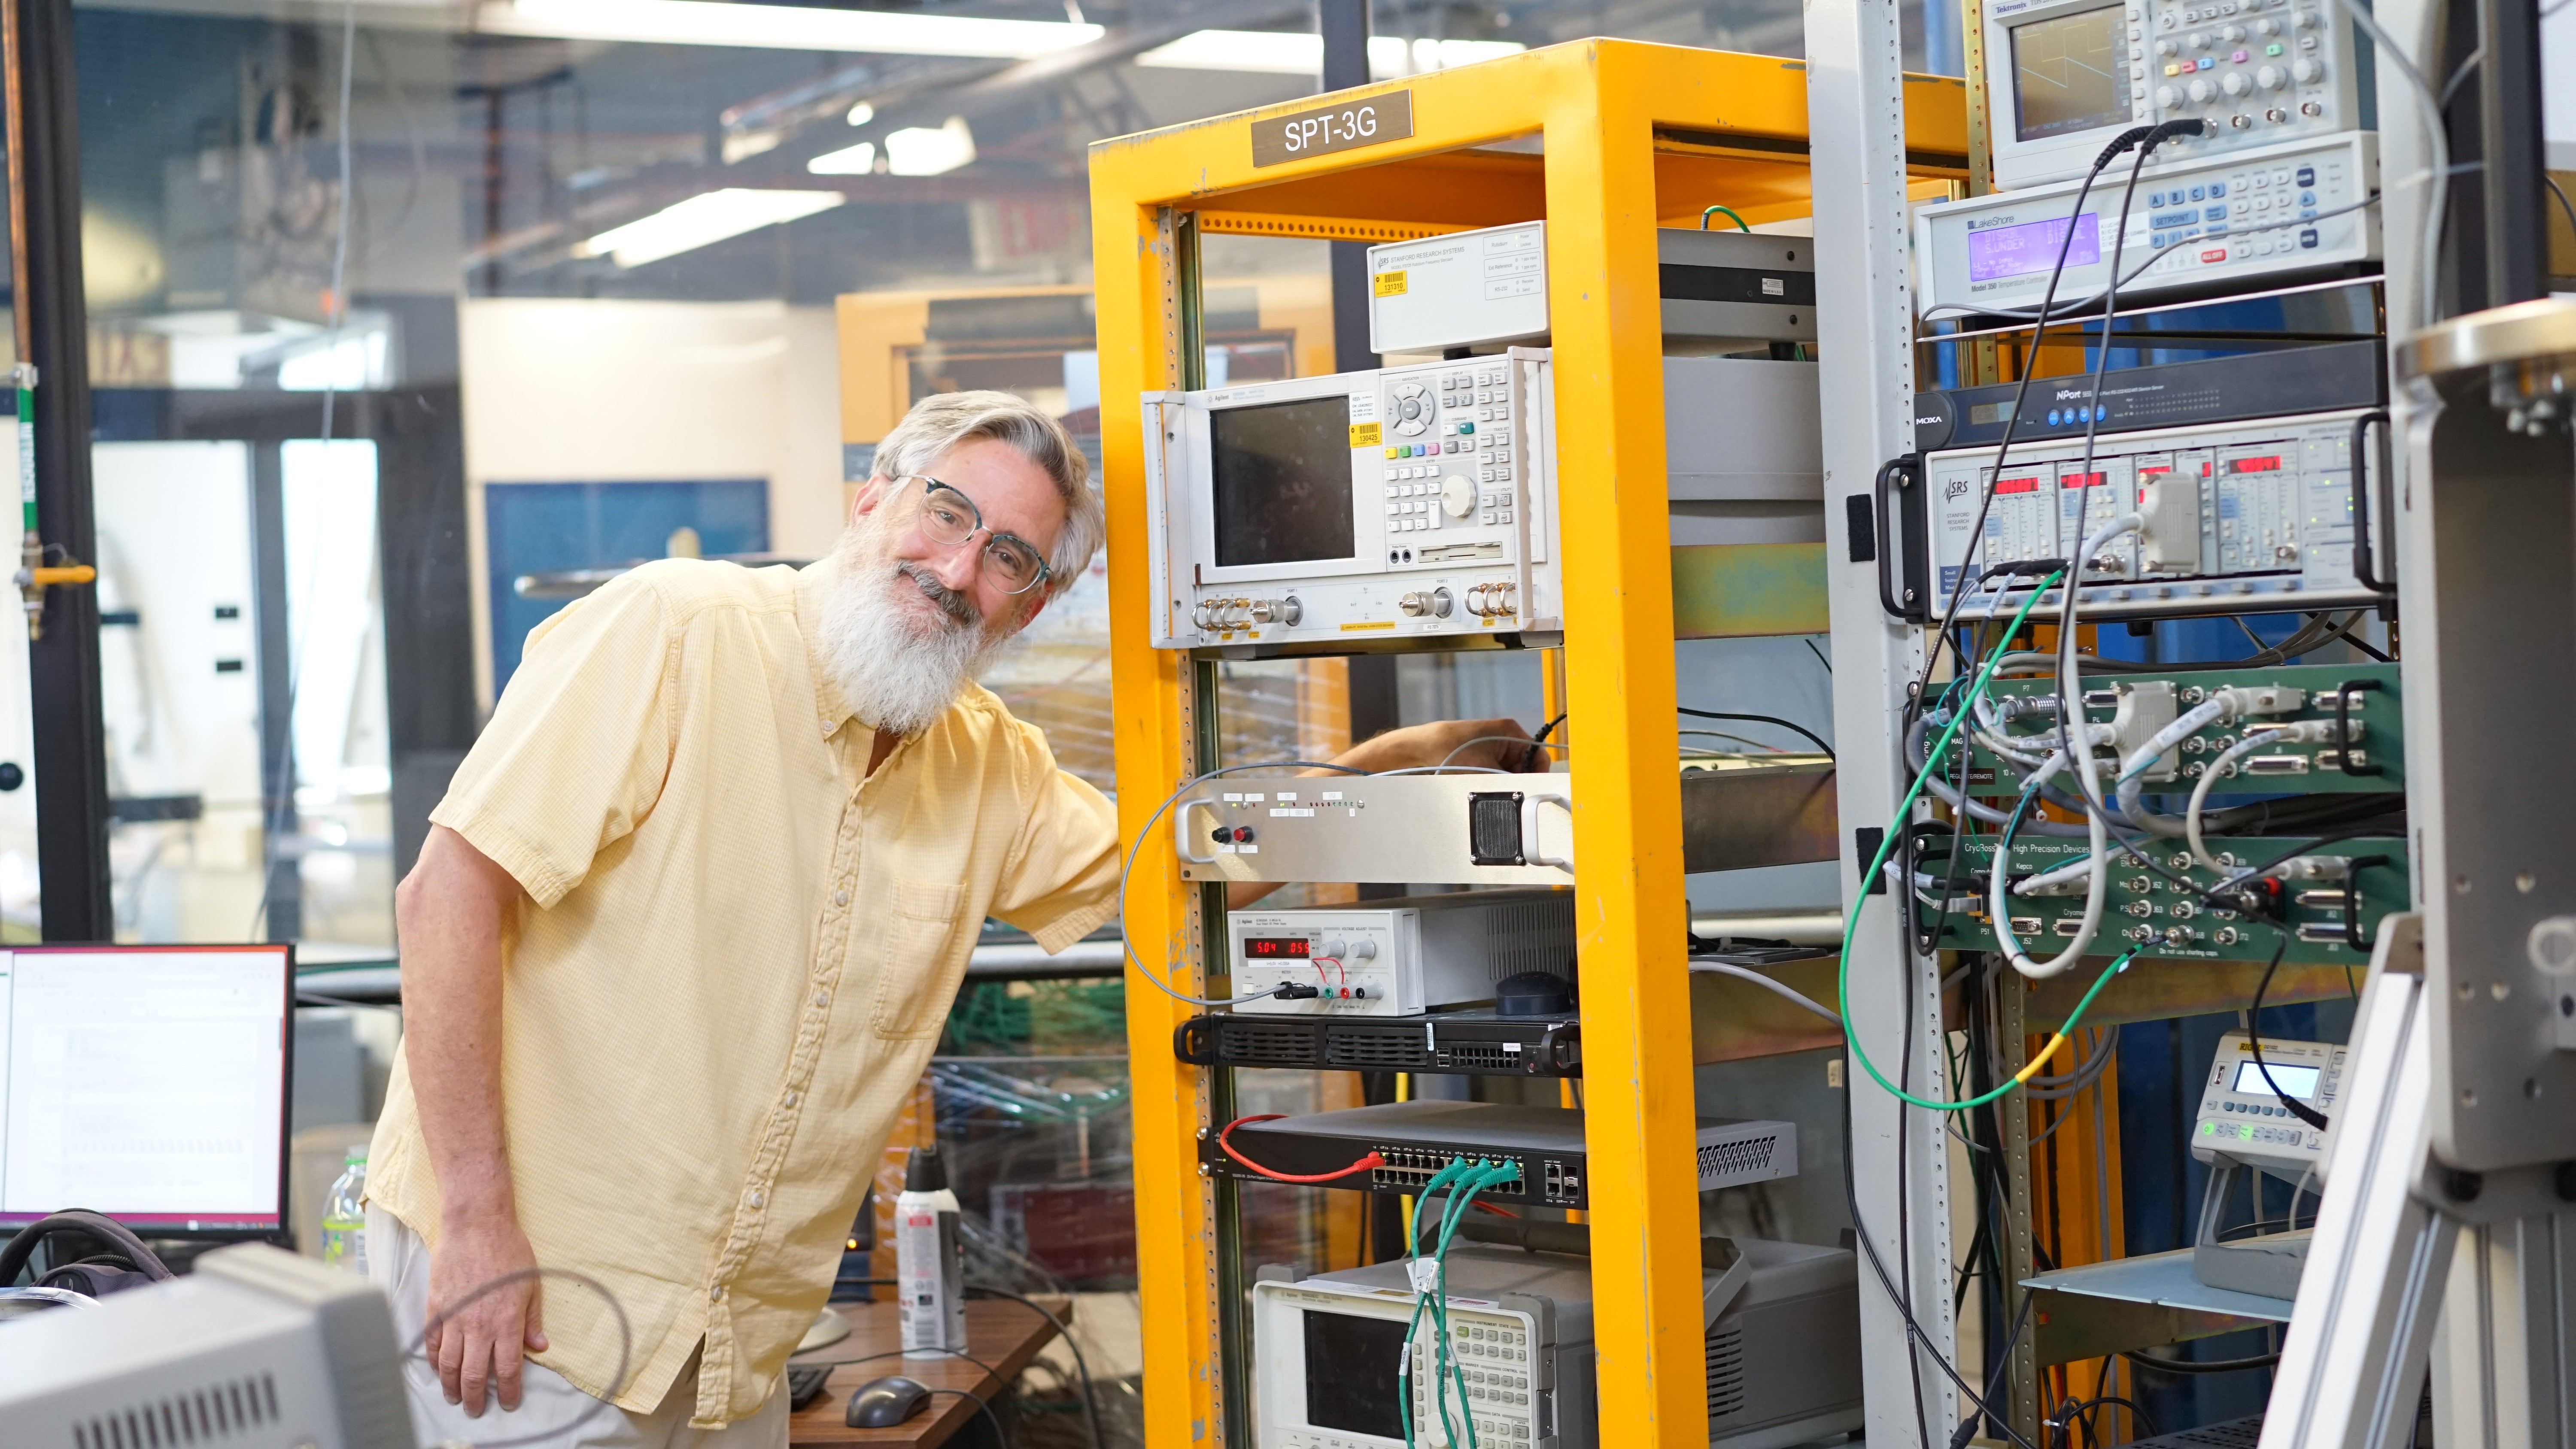 (2/2) The electronics is Gustavo Cancelo's fMESSI board (for frequency multiplexed electronics for superconducting sensors), which they use to control the uMUX (microwave multiplex) chip from NIST. Chris enjoys his work! people Photo: Leticia Shaddix